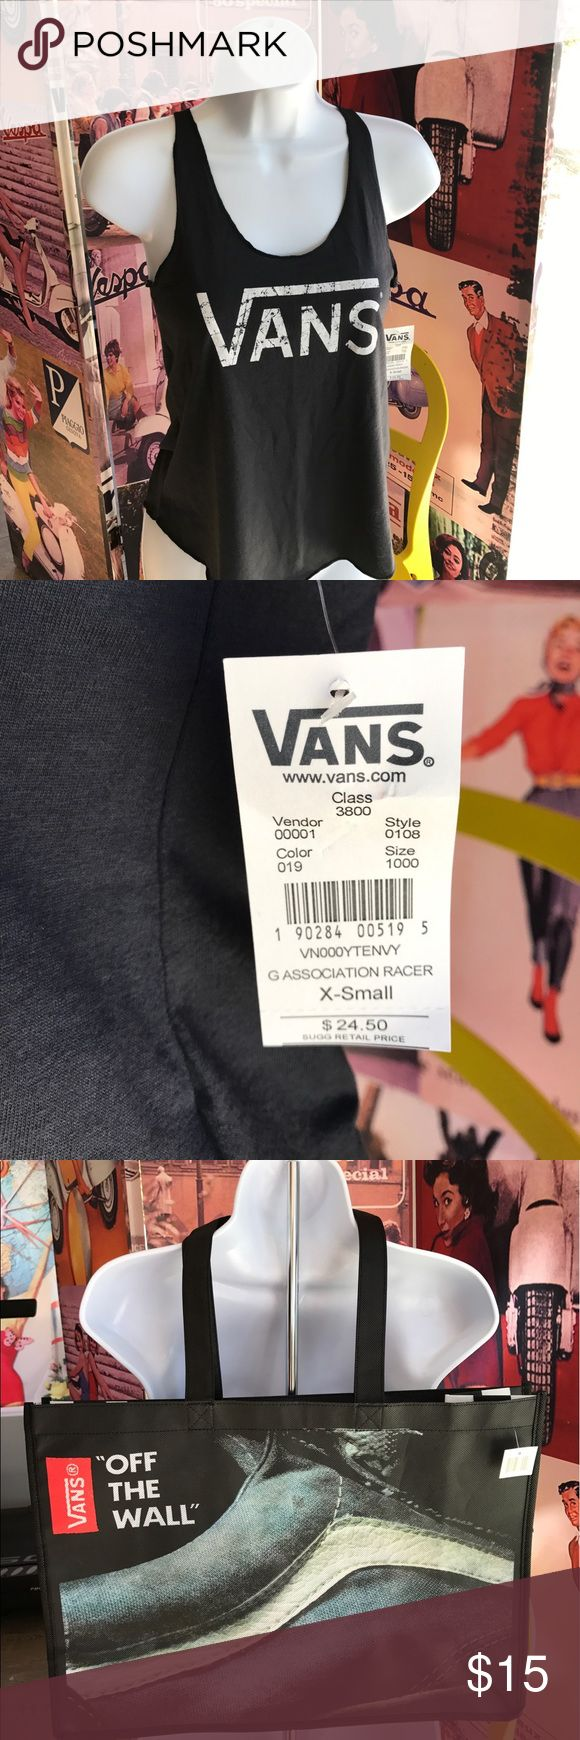 VANS Association 🏁 Racer Tank ✨NEW✨ with the 🏷 Comes with Reusable Vans Shopping Tote. Dark gray. Size XS. 100% Cotton.  ✨NEW✨ with the 🏷tags! (NWT) great deal especially with bag, so no offers please. You can BUNDLE this with one or more item(s) to take advantage of my 20% percent 💰DISCOUNT💰🎉! Vans Tops Tank Tops